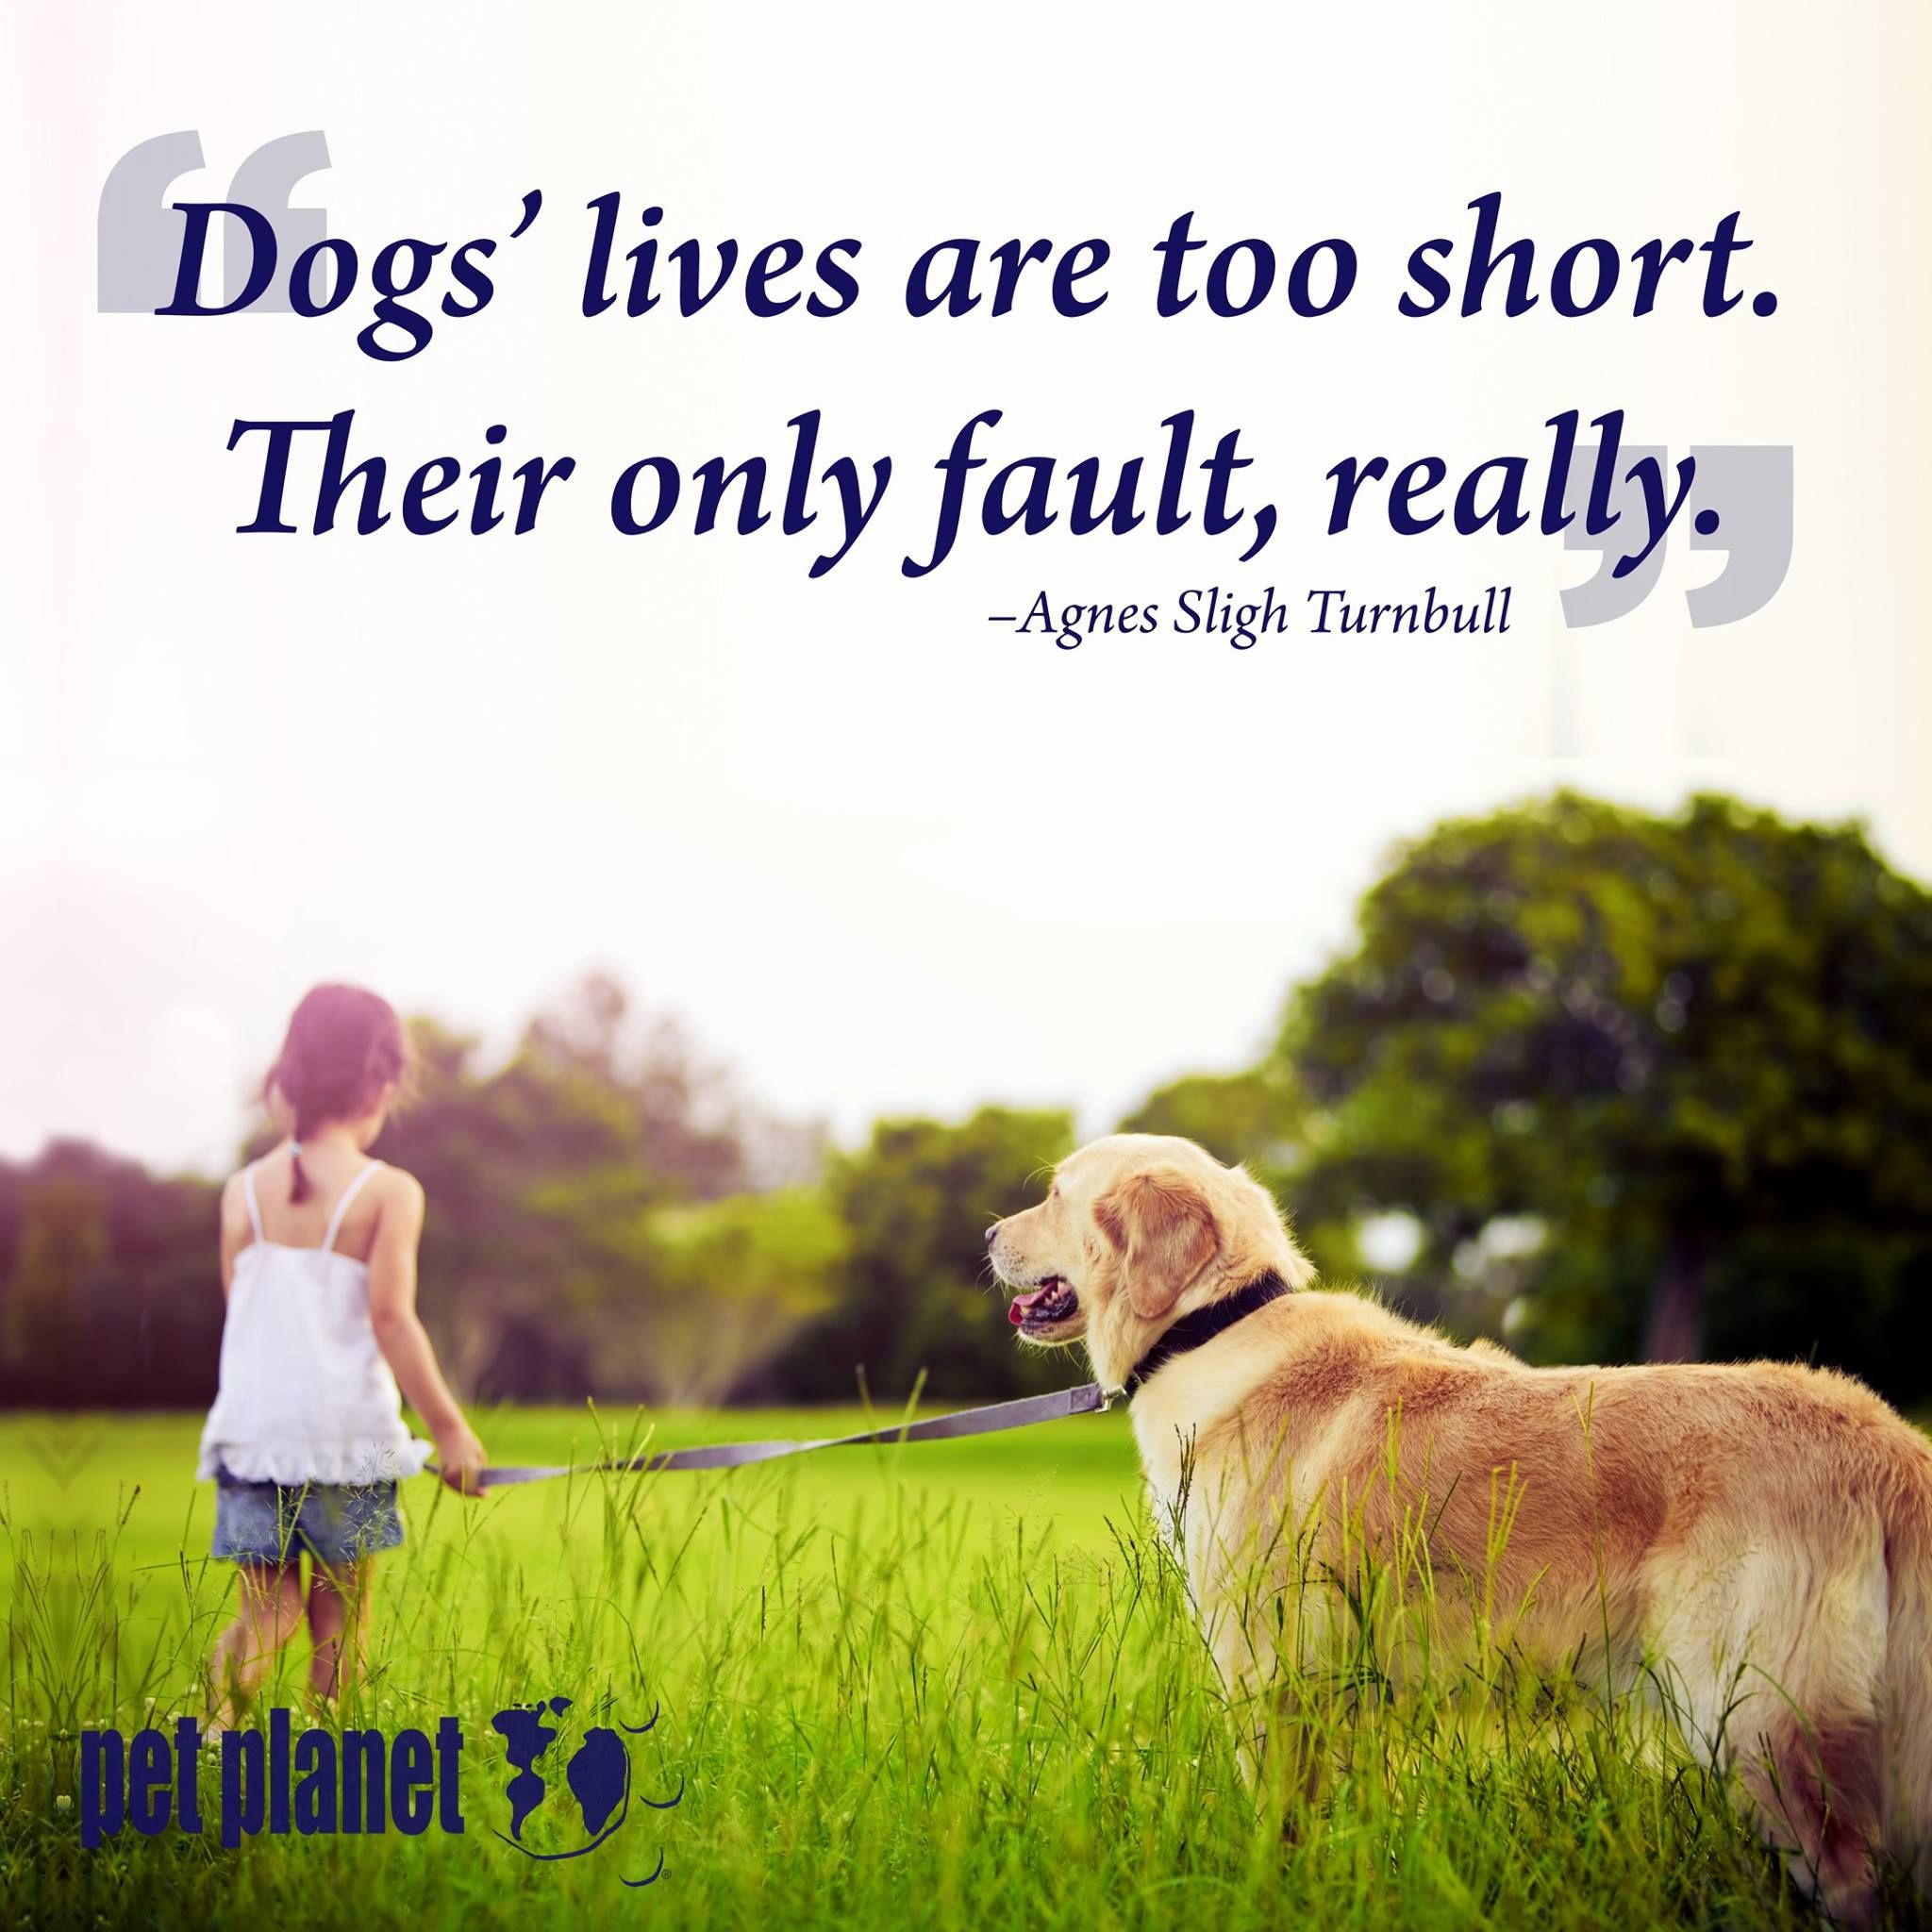 Dogs Lives Are Too Short Their Only Fault Really Agnes Sligh Turnbull Petplanethealth Petguardianship Quoteoftheday Dogs Pets Pet Store Dogs